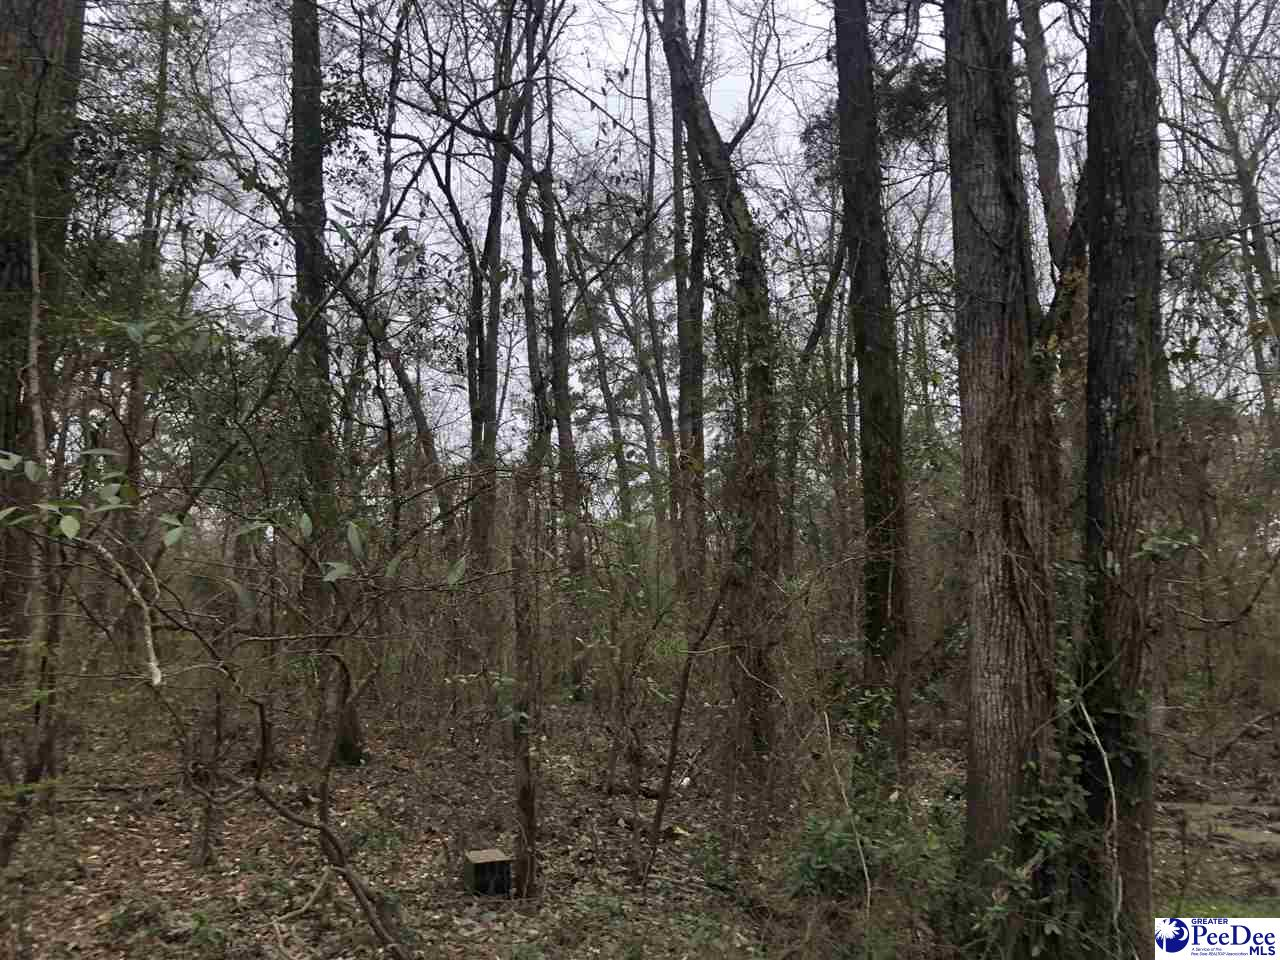 Wooded 1.12 acre lot.  Property borders Black Creek. This is one of very few lots left on Black Creek.